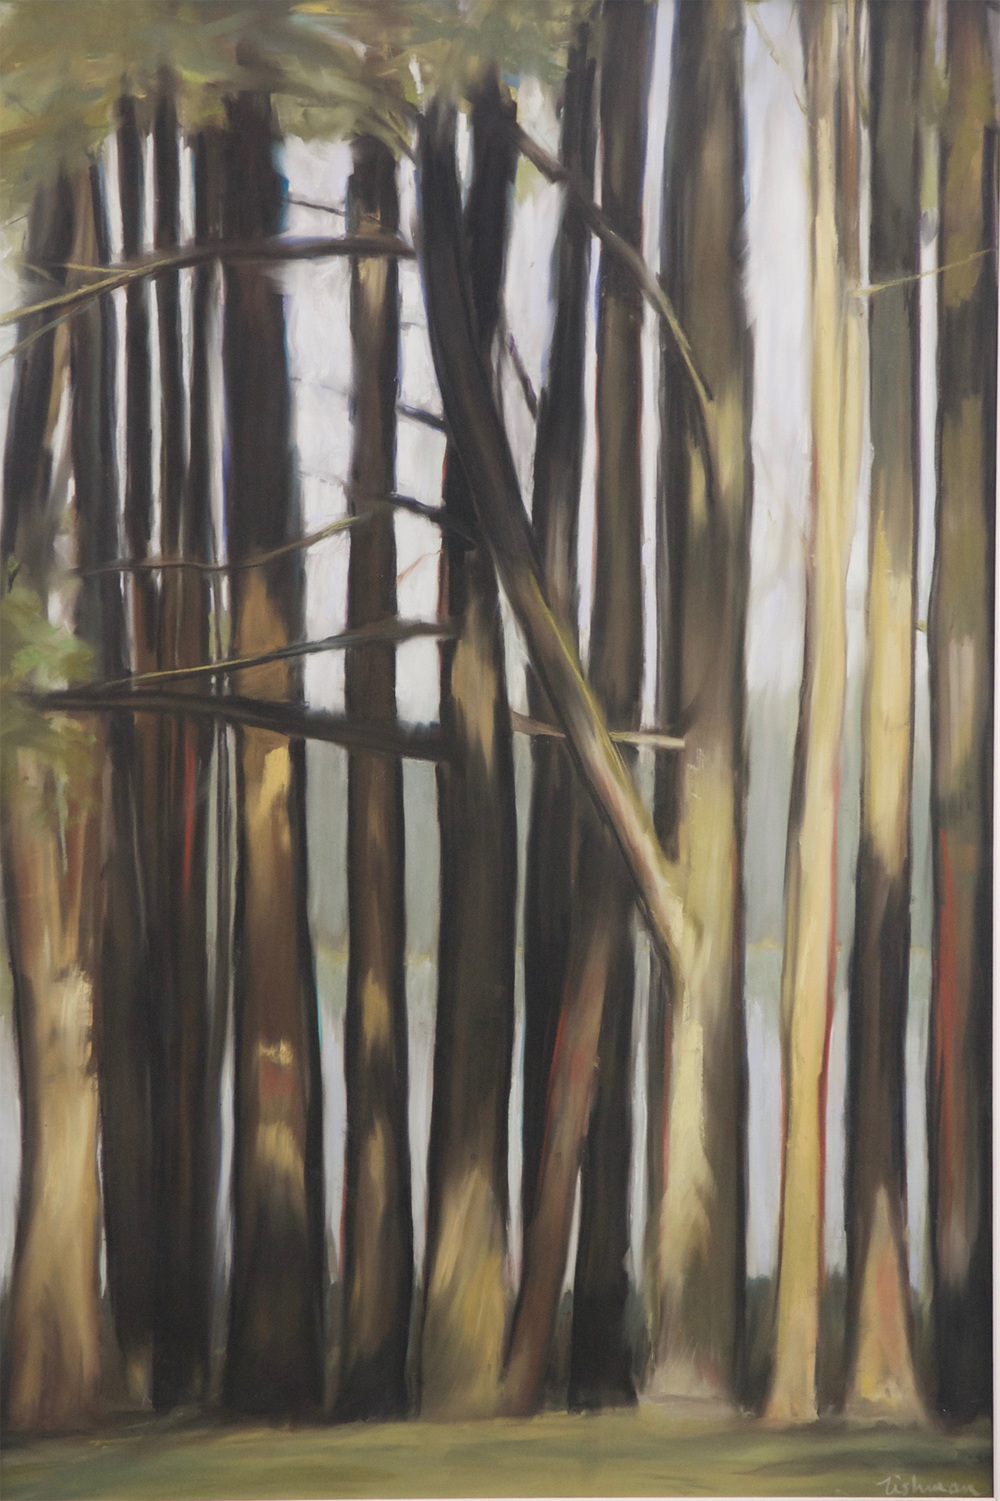 <p><strong>ANDREA TISHMAN</strong>pastel, acrylic, printmaking<a href=/andrea-tishman>More →</a></p>